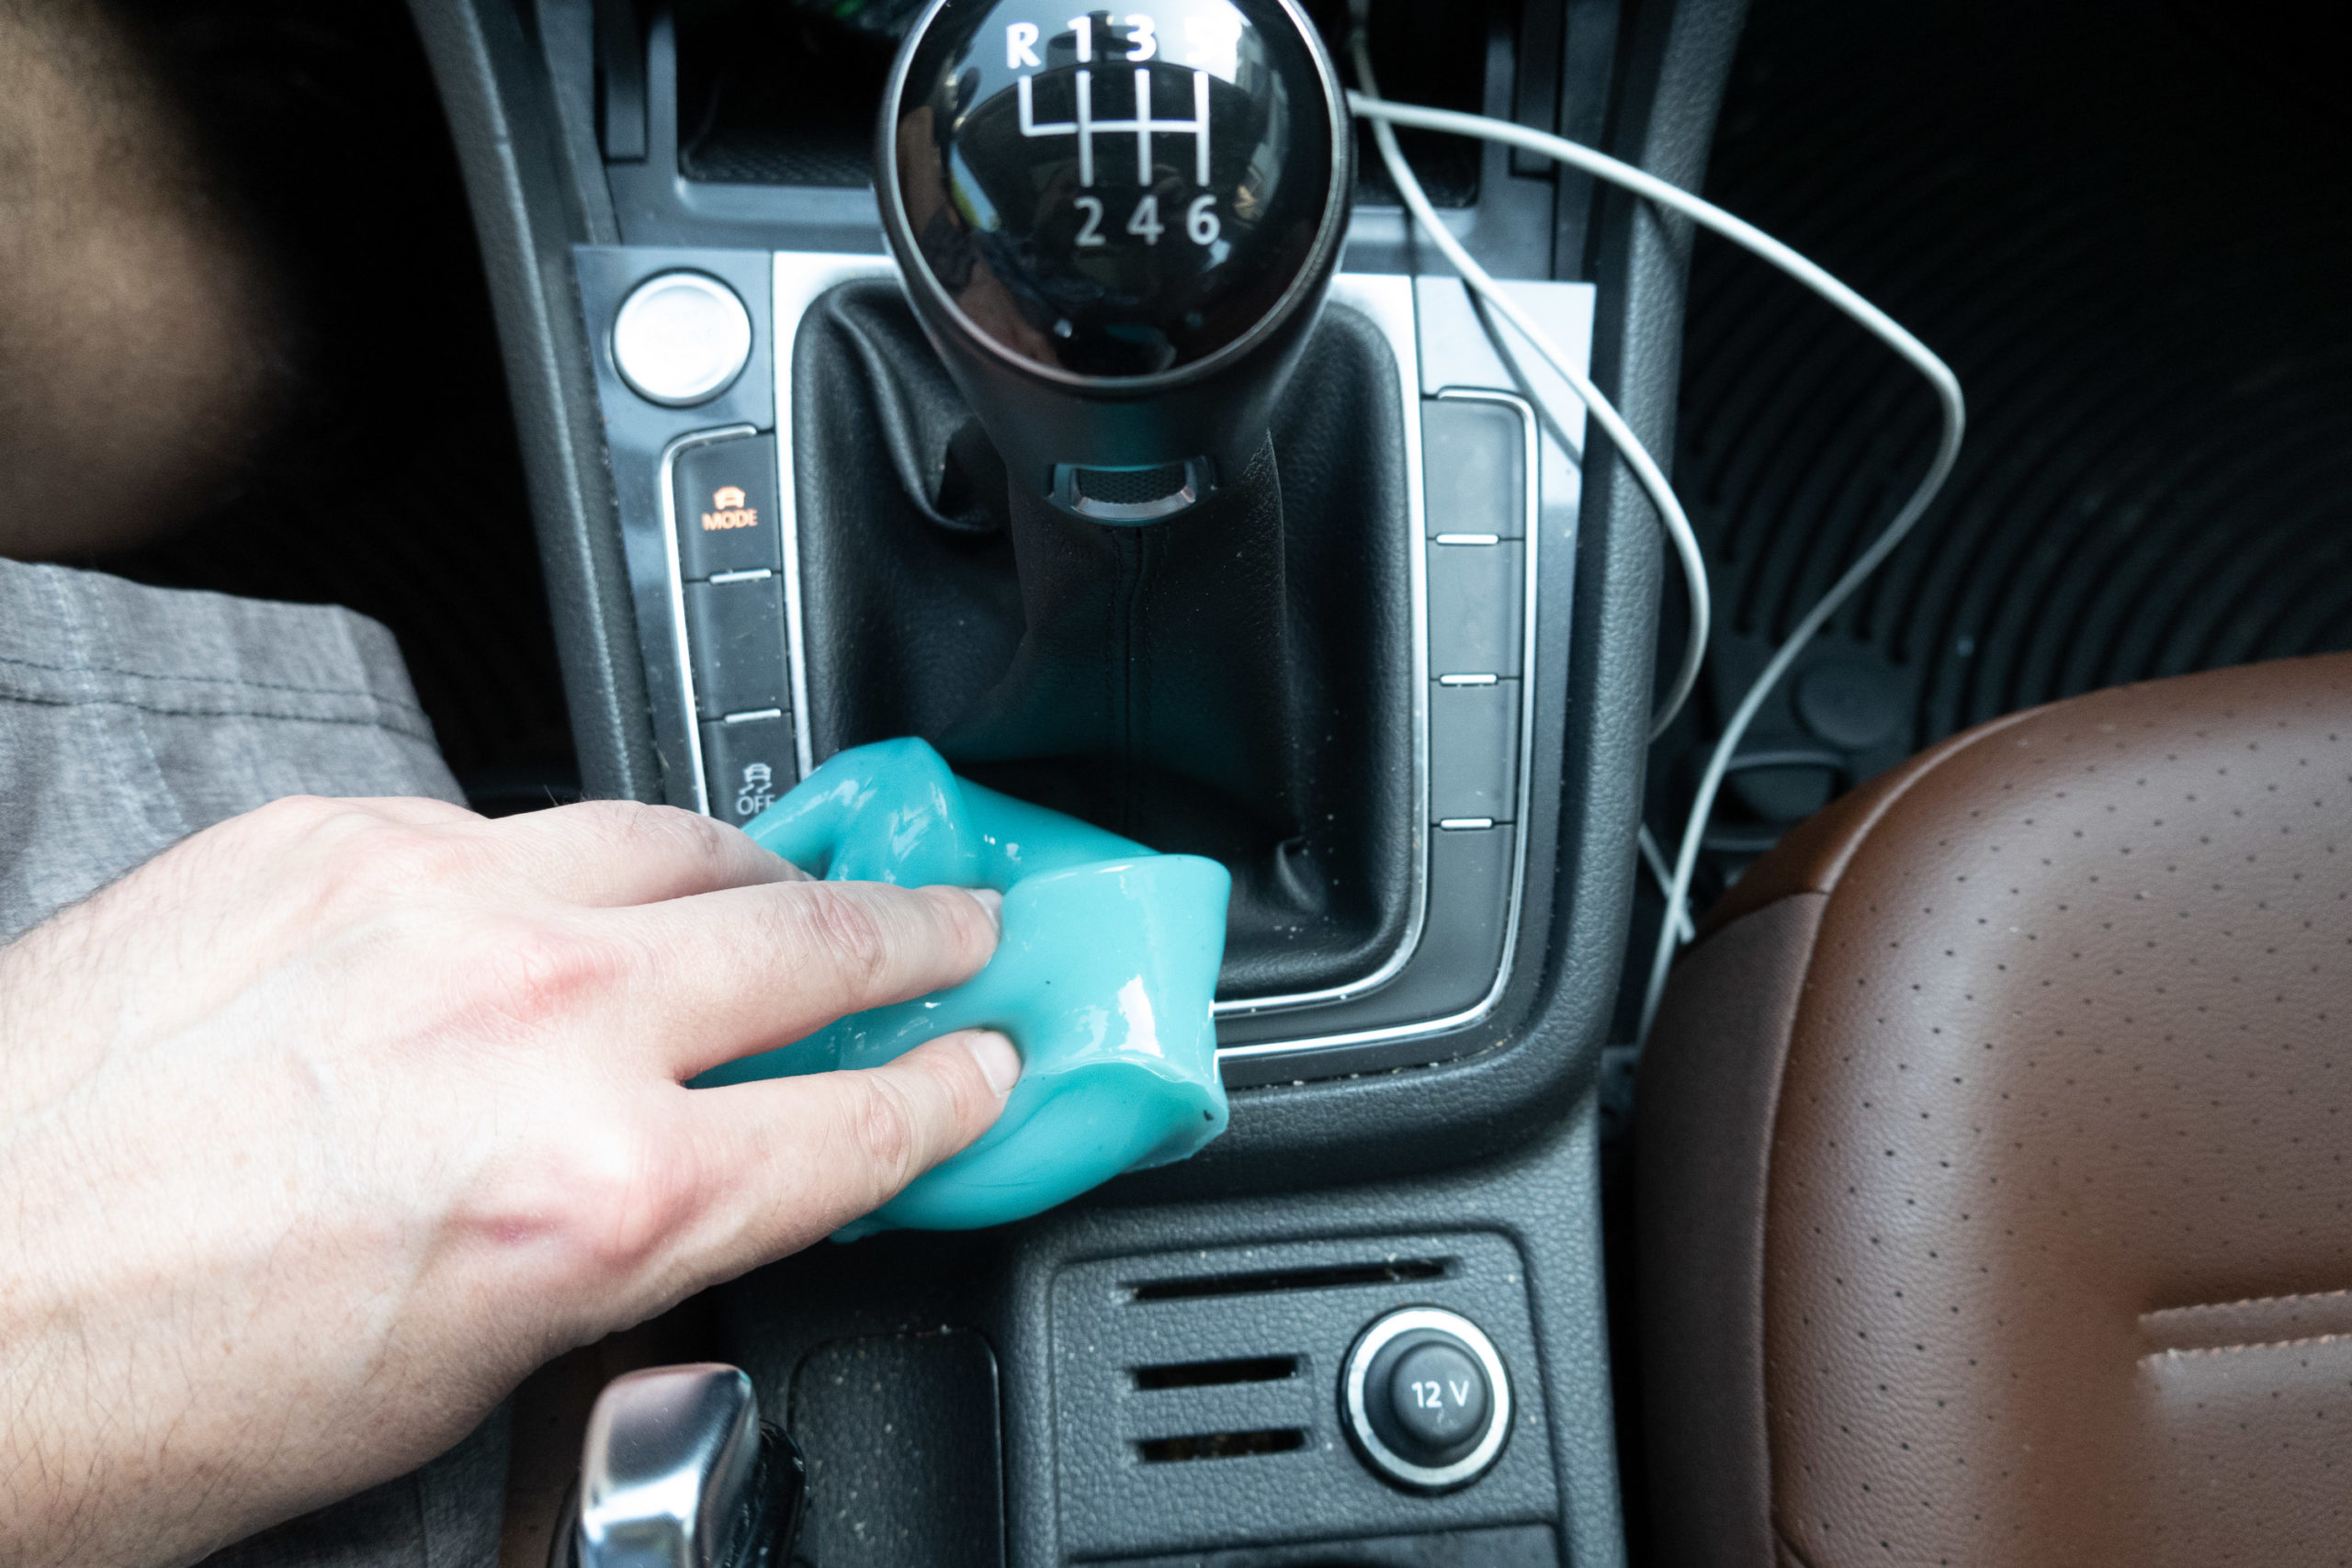 Cleaning a car with teal goop